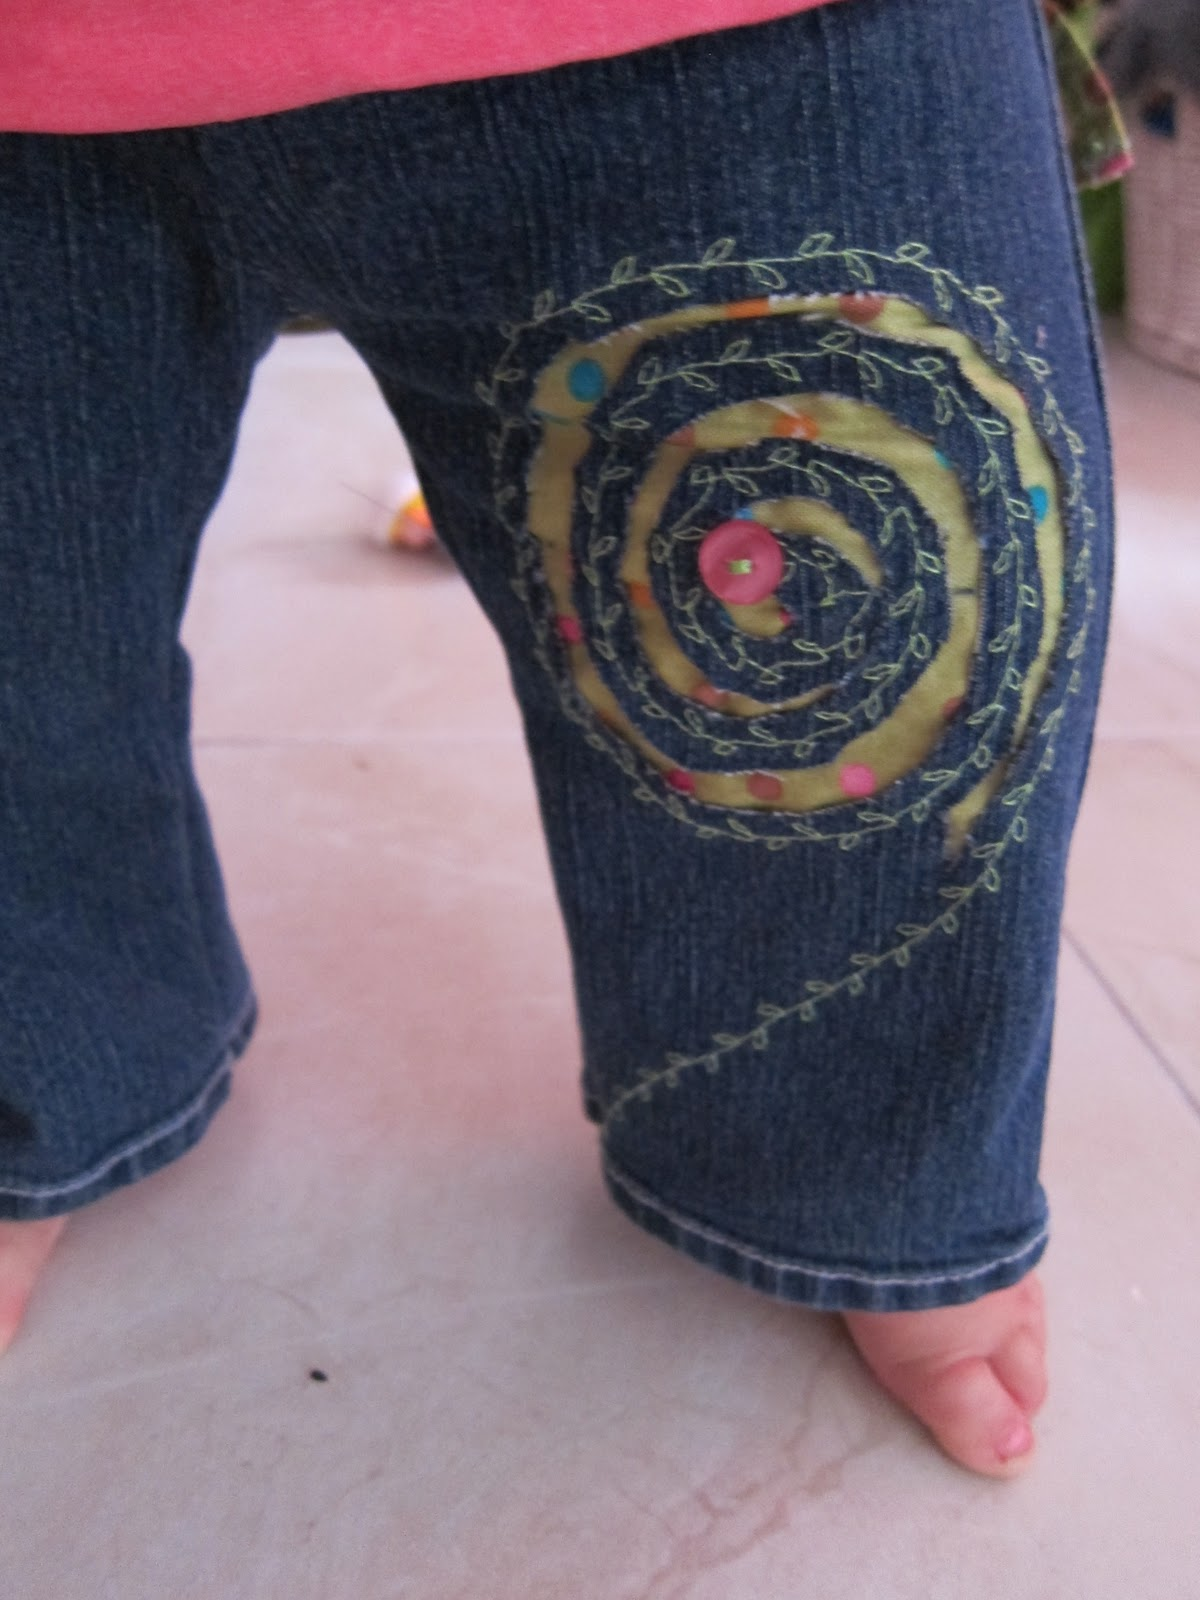 ... Mother: Refashion baby jeans with reverse applique & bum ruffles